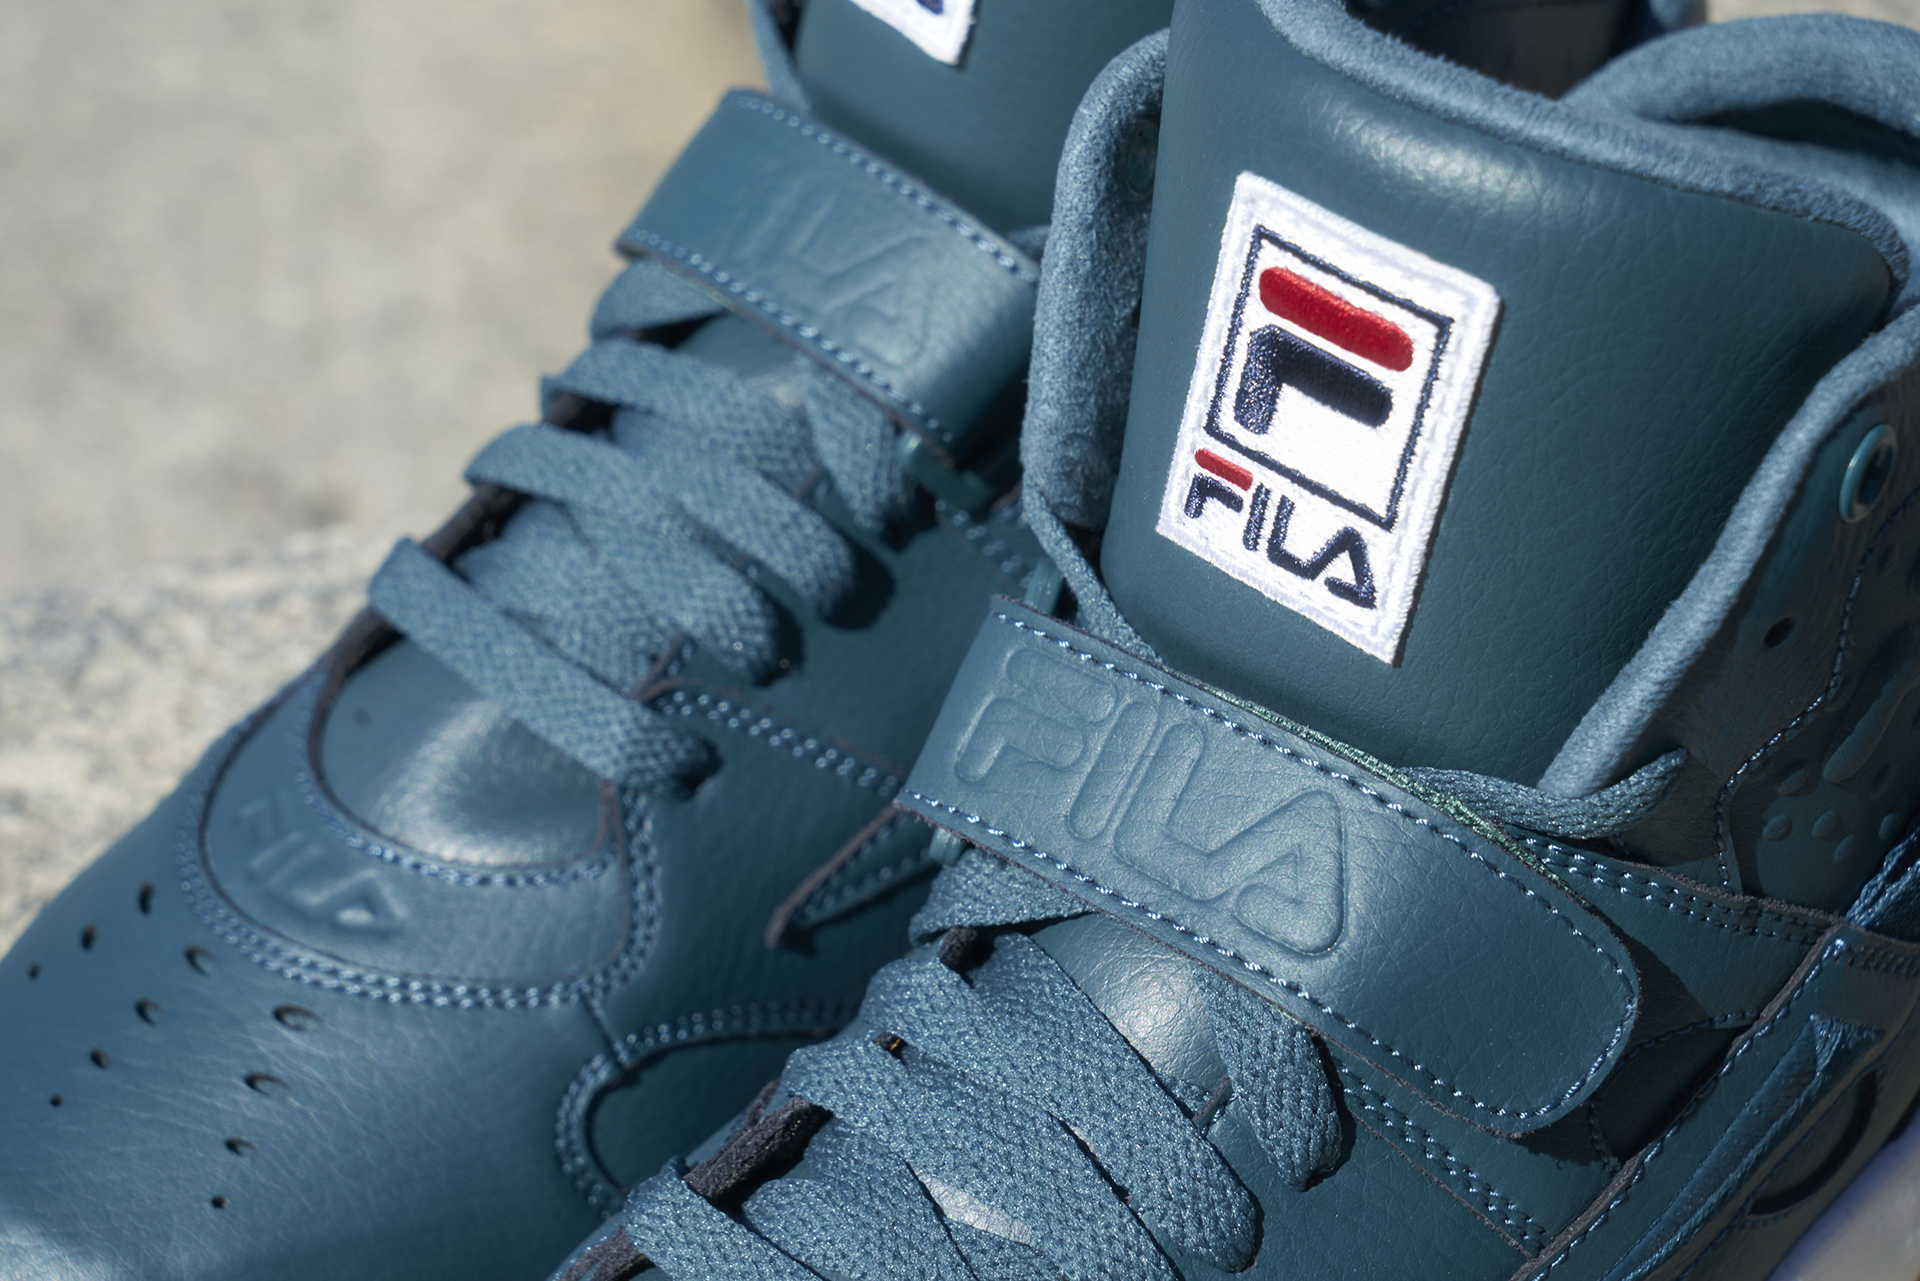 Fila spoiler soaring summer pack close